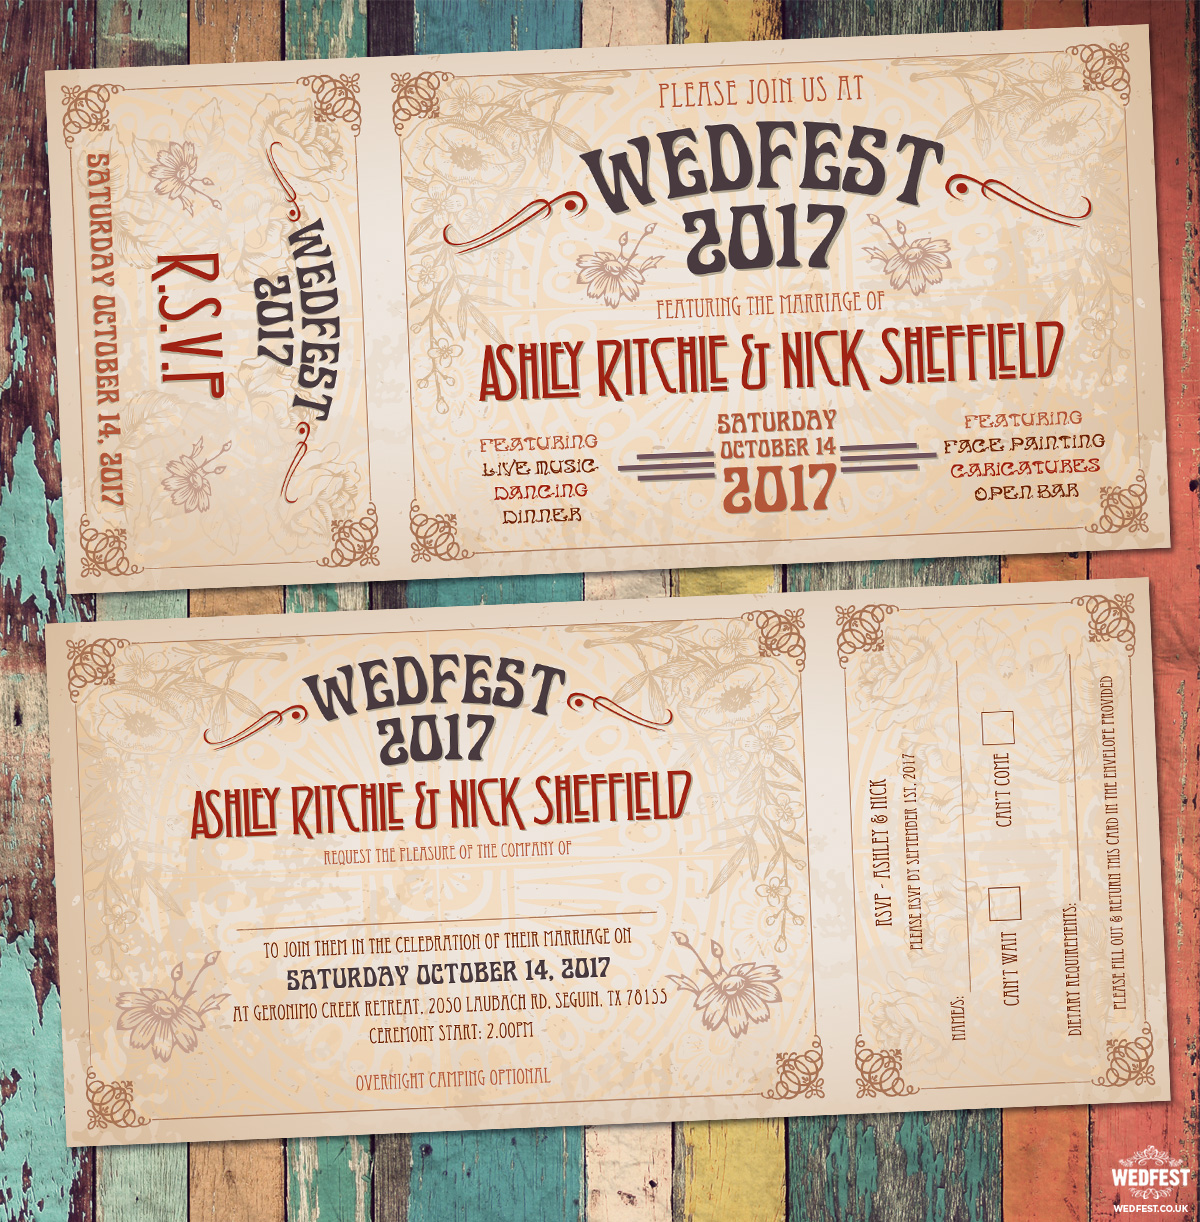 wedfest vintage festival ticket-wedding invitation